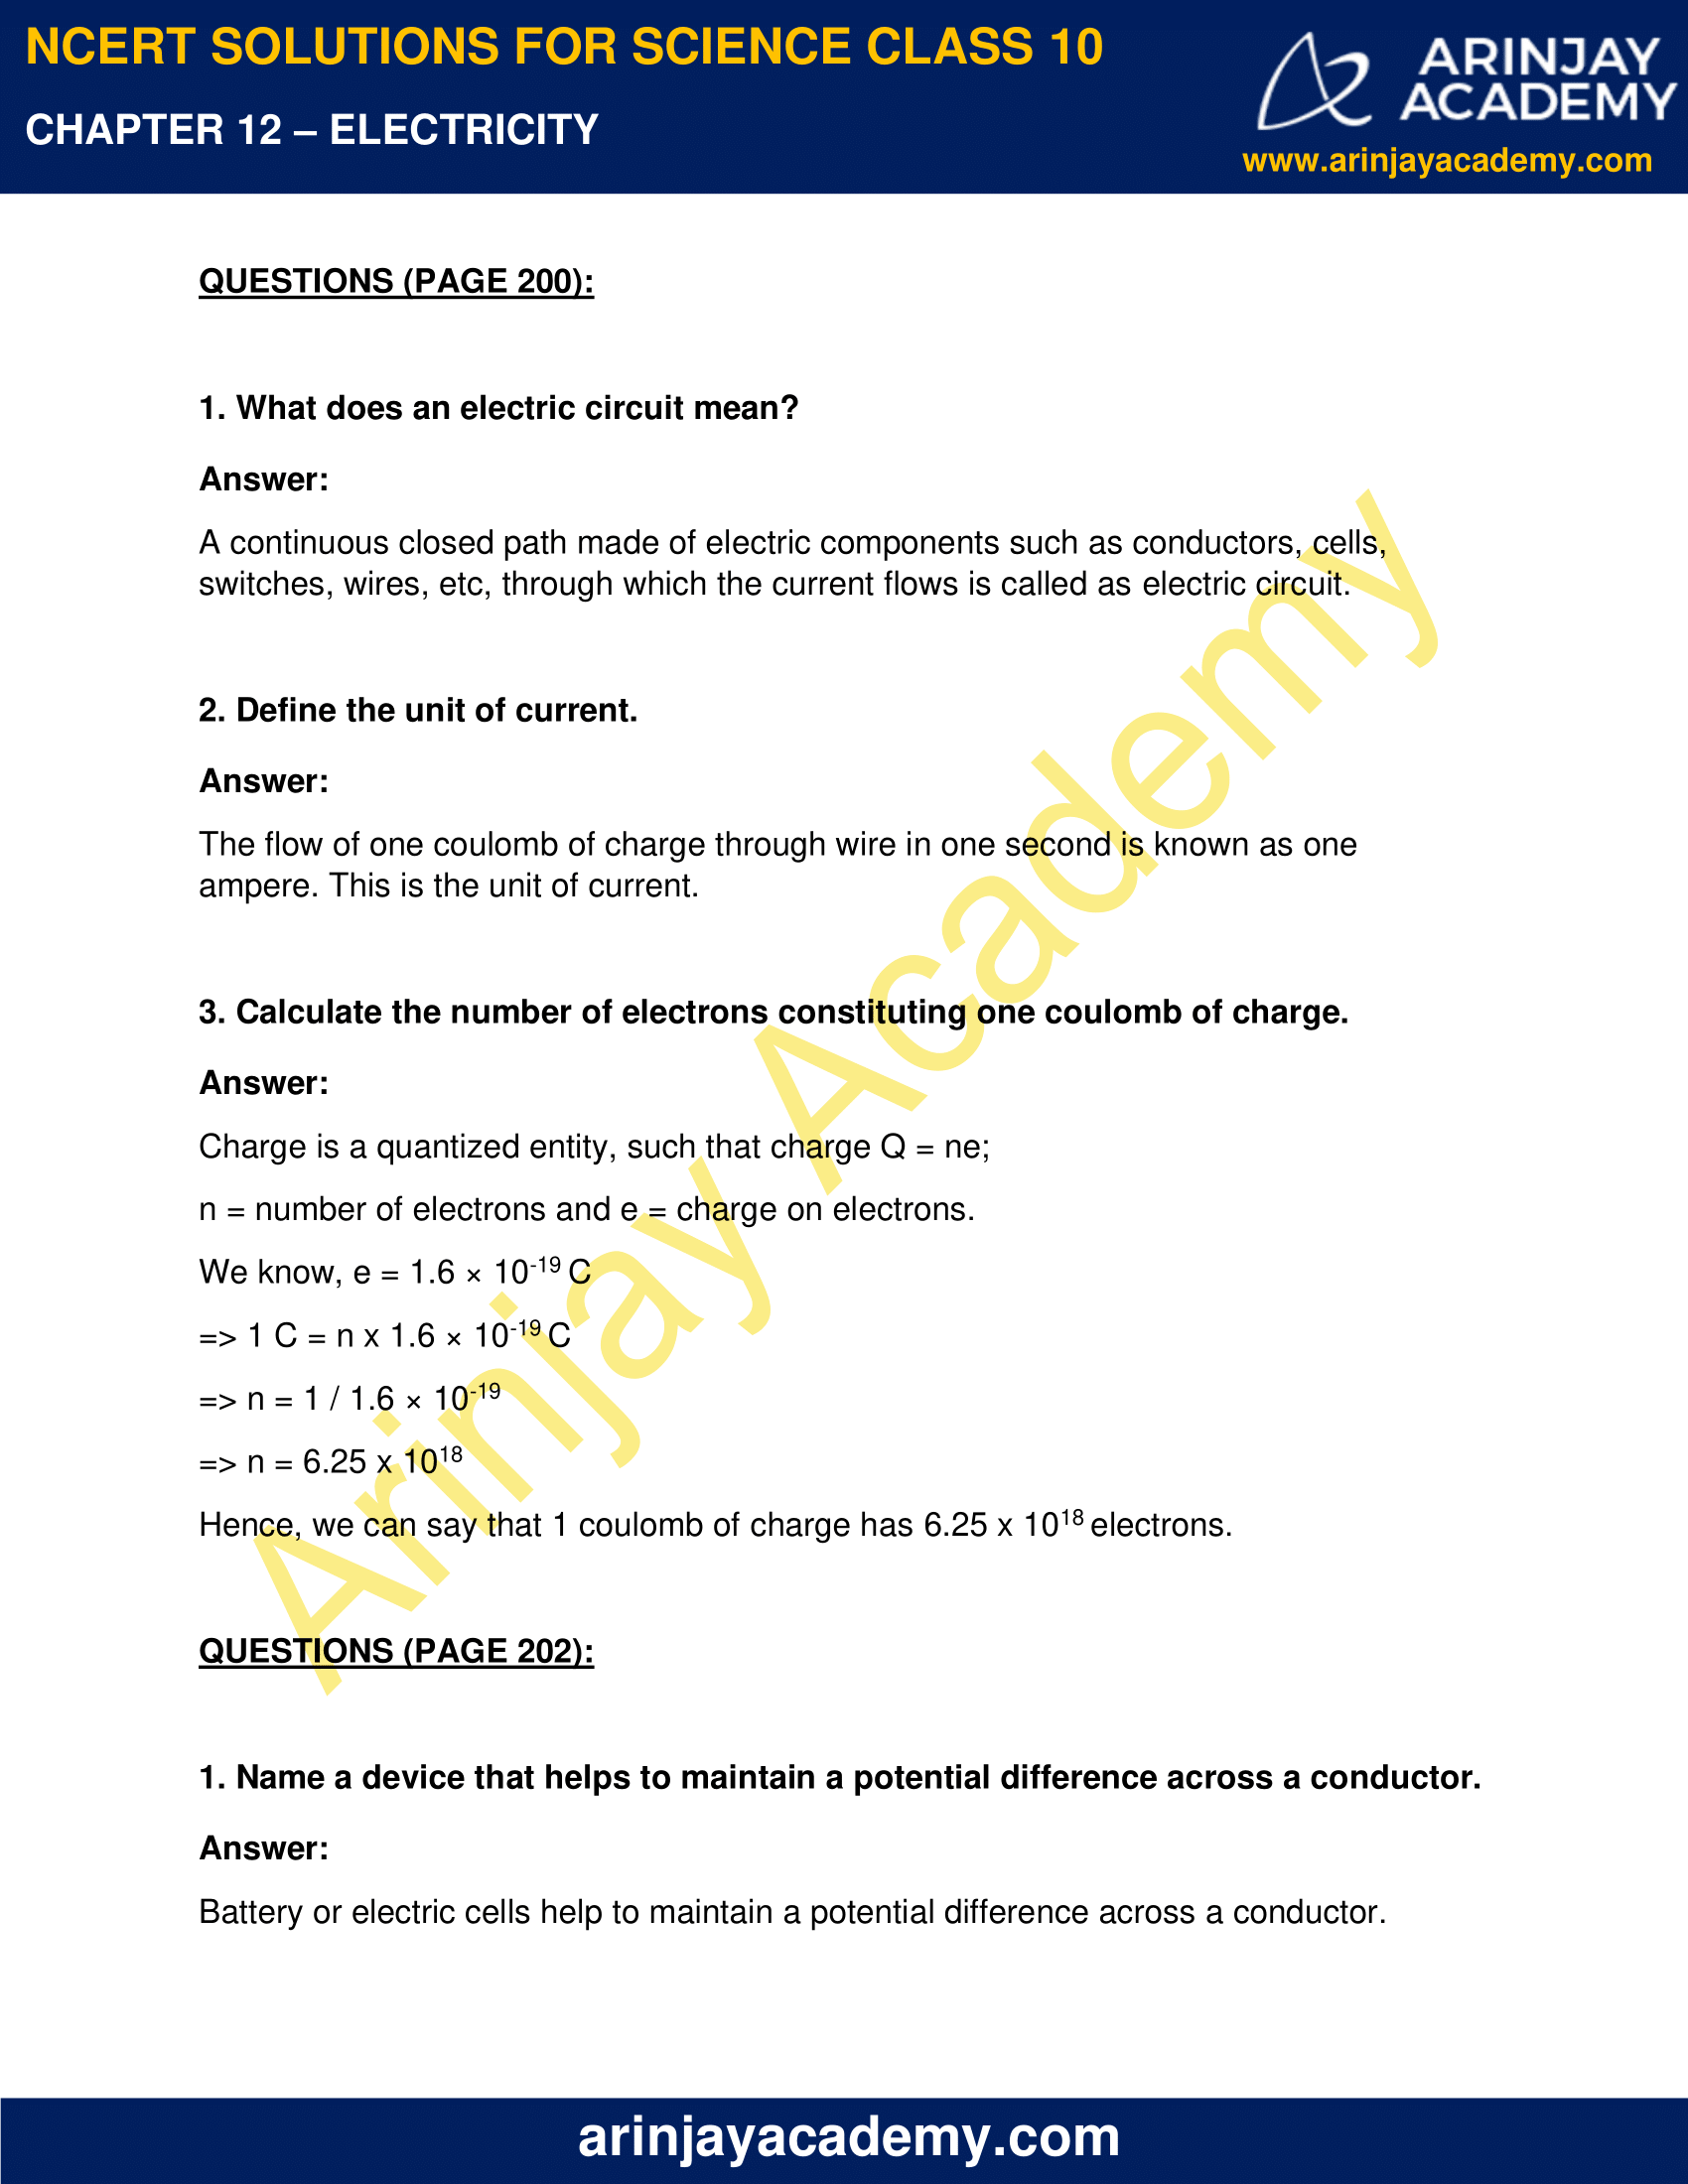 NCERT Solutions for Class 10 Science Chapter 12 Electricity image 1